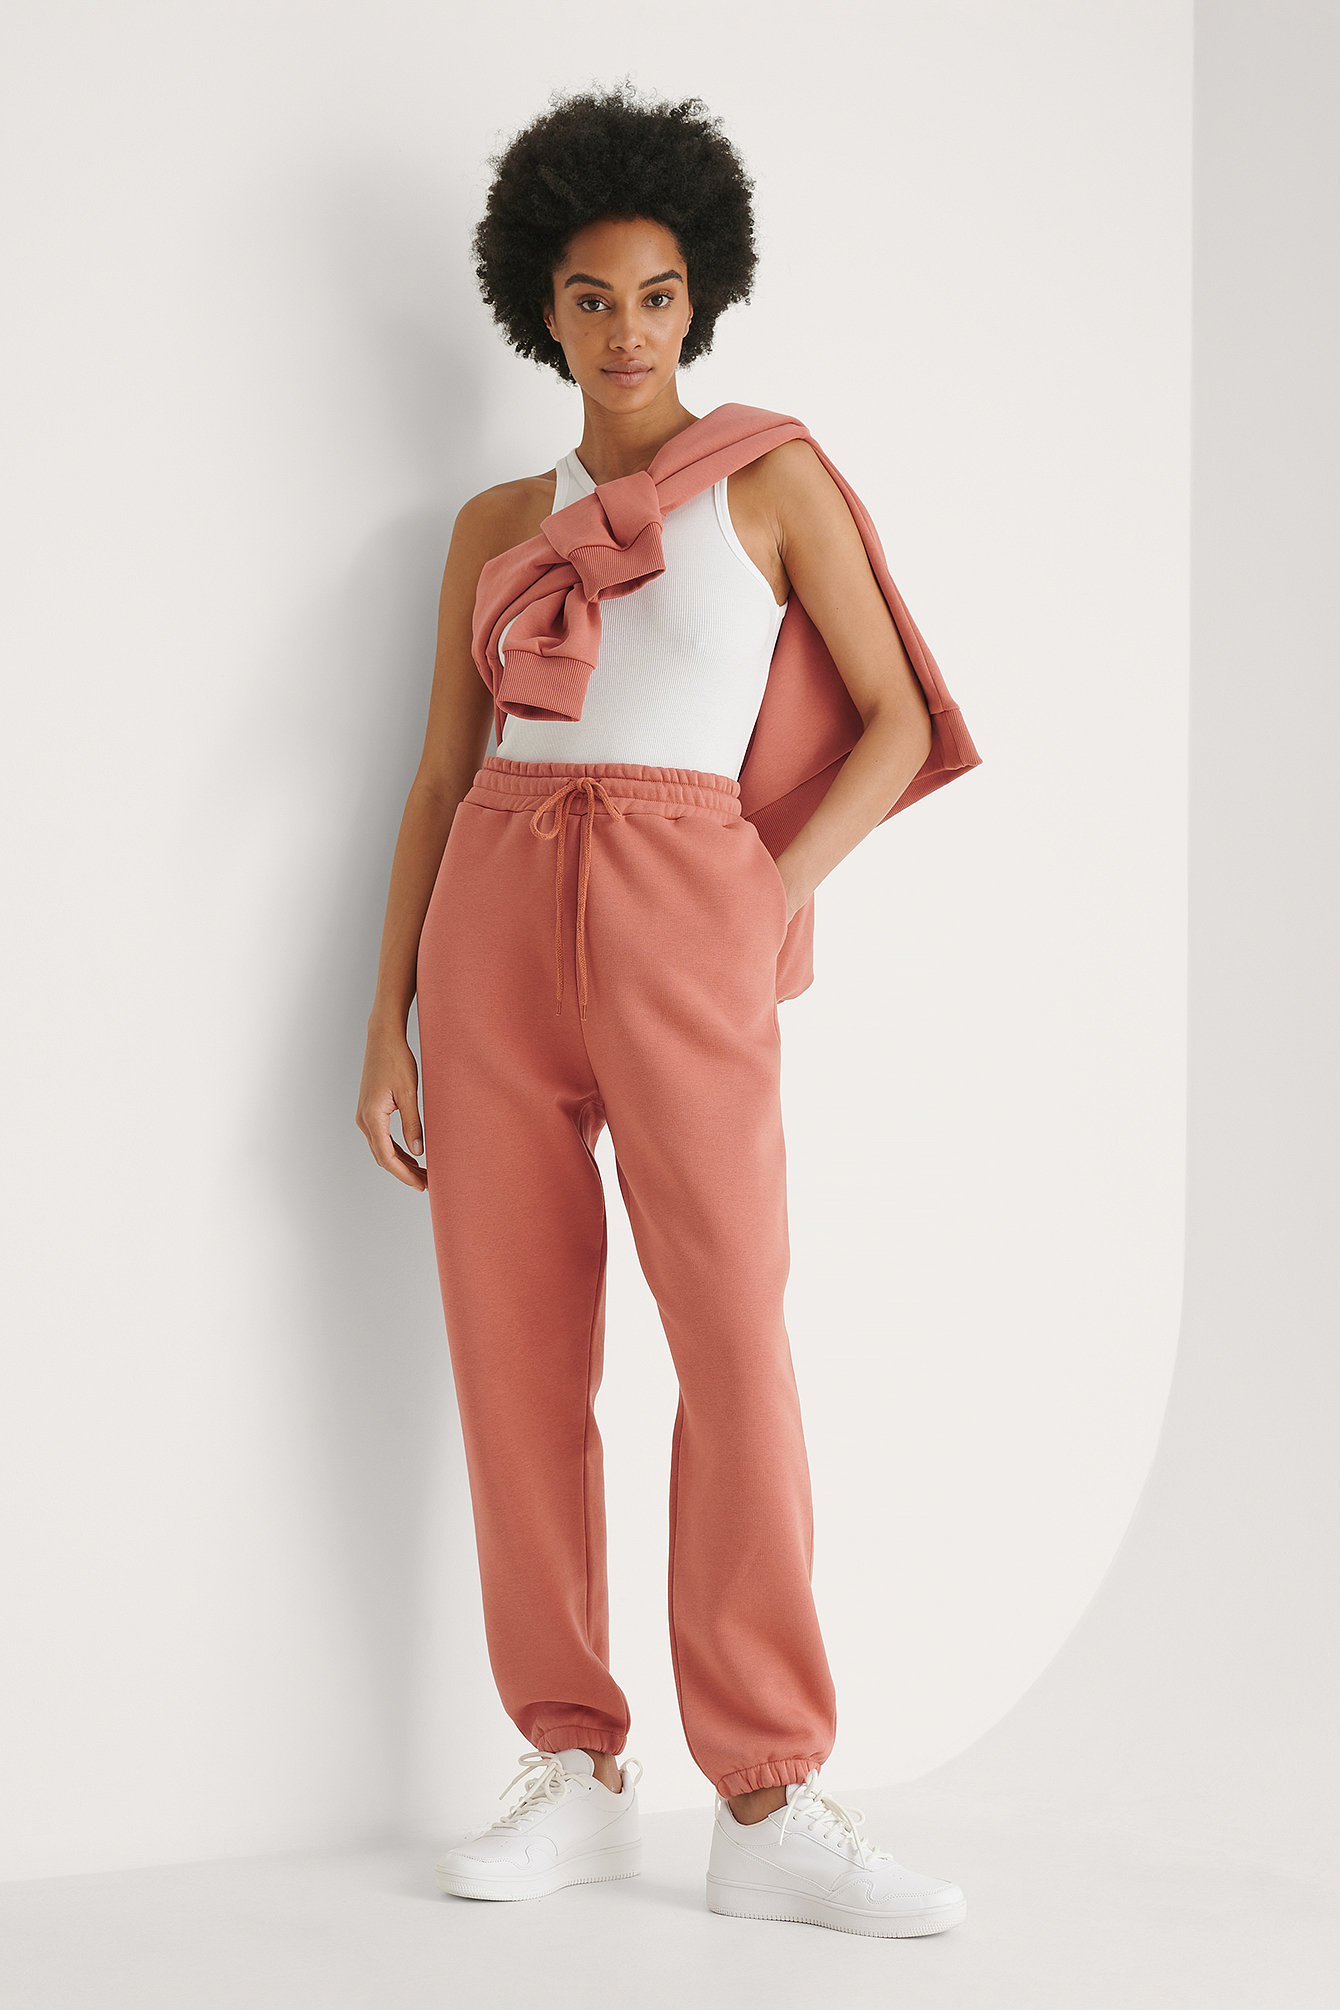 Dusty Dark Pink Pantalon De Survêtement Fuselé Bio